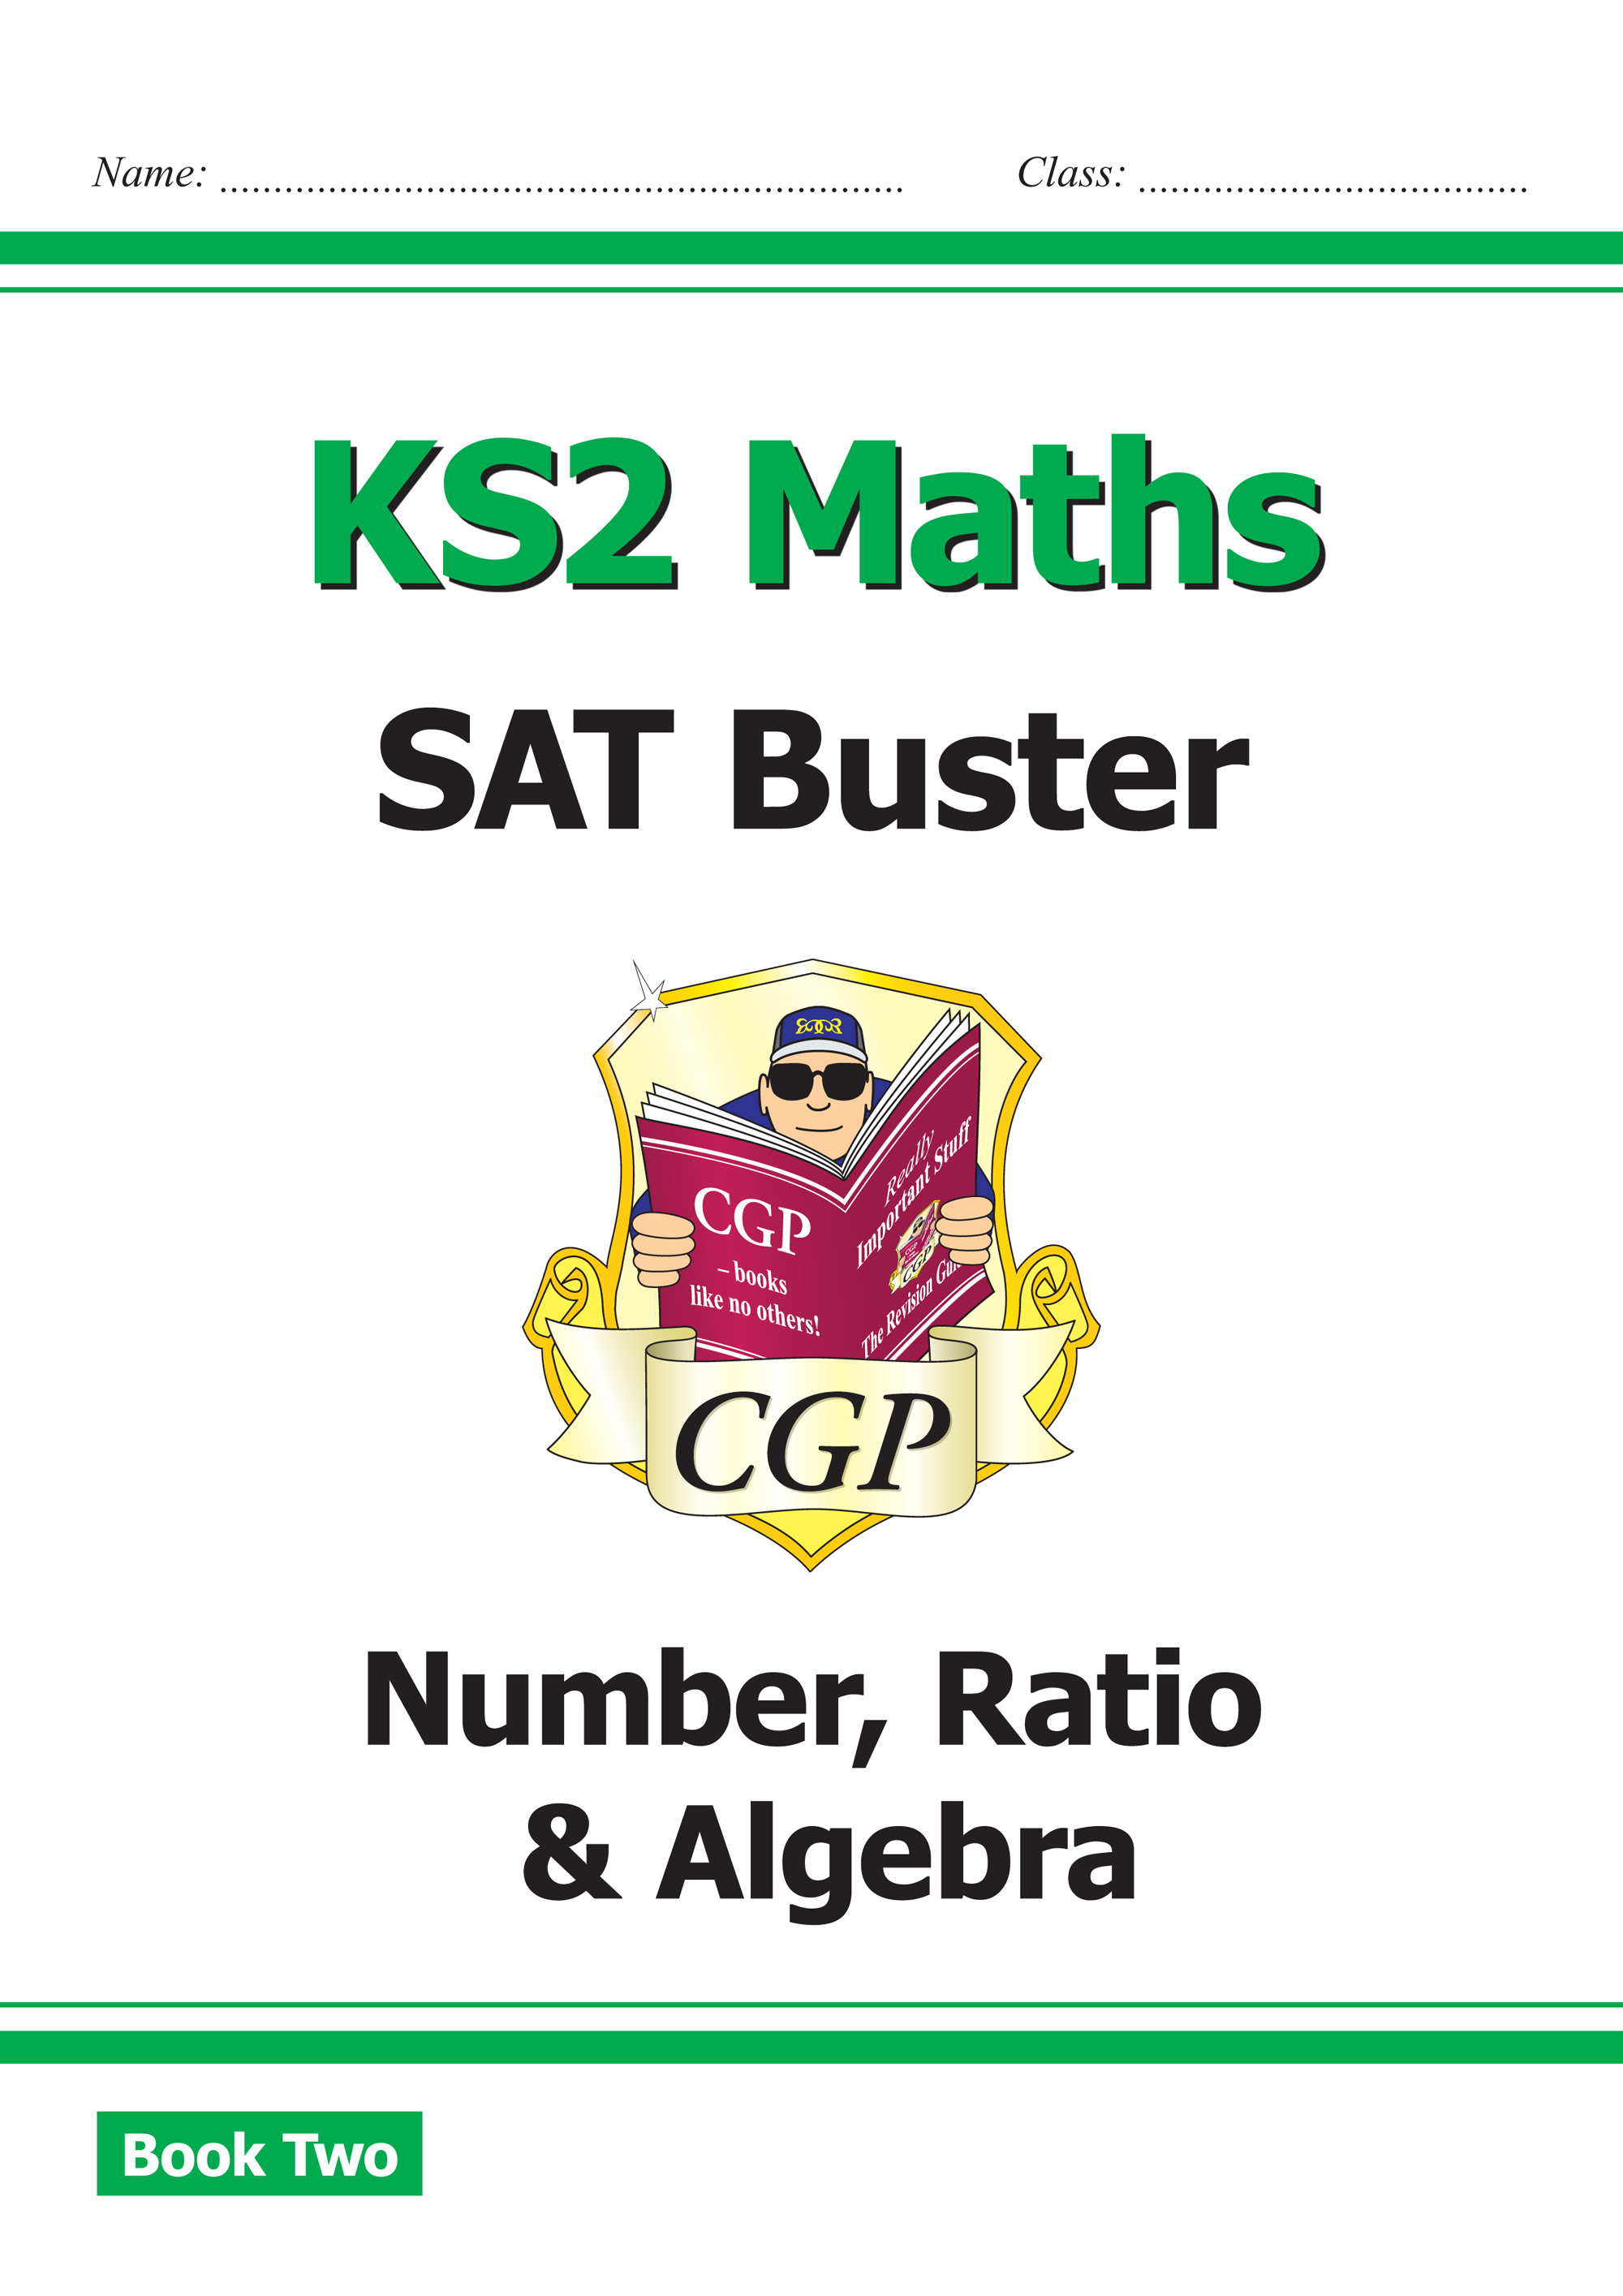 M6N221 - New KS2 Maths SAT Buster: Number, Ratio & Algebra Book 2 (for the 2019 tests)